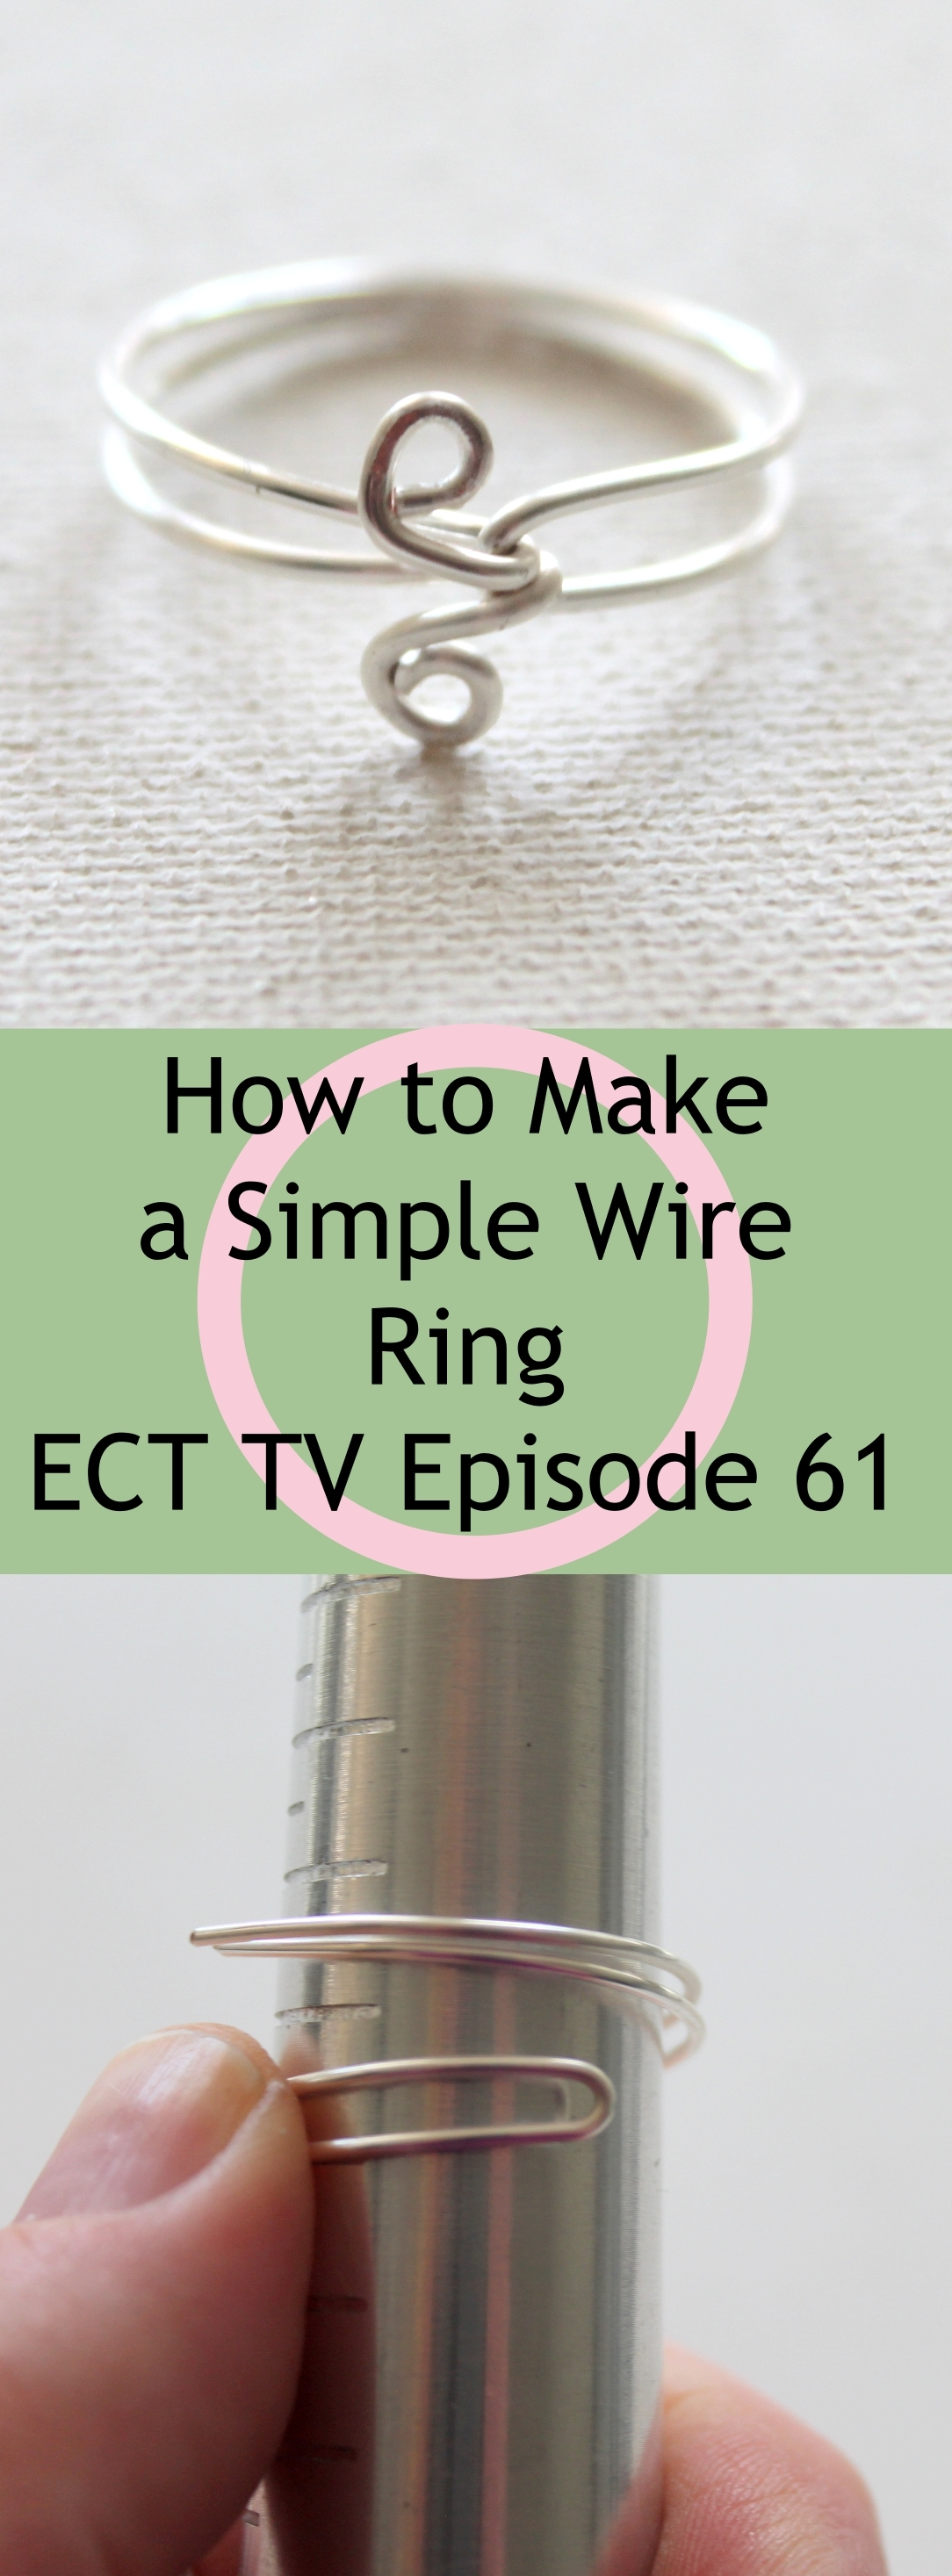 How to Make a Simple Wire Ring